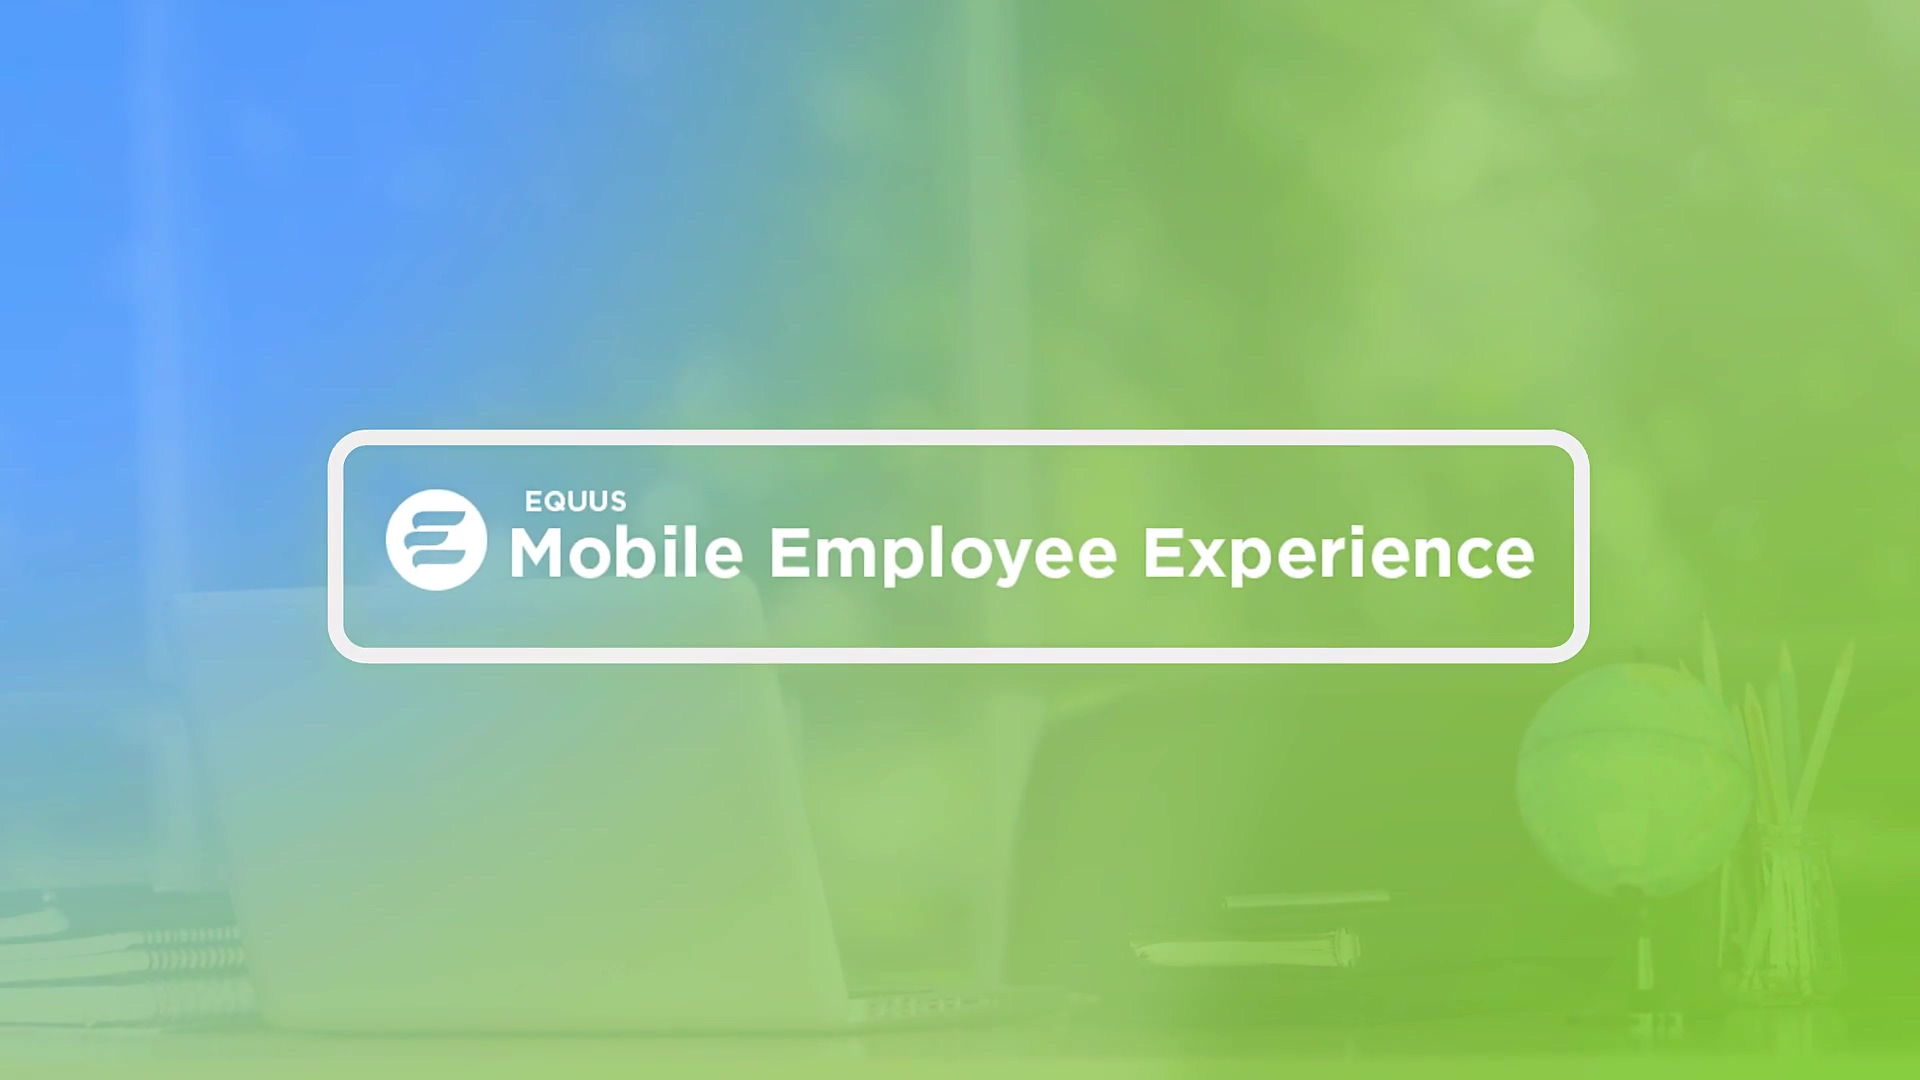 Mobile Employee Experience - enable your employees